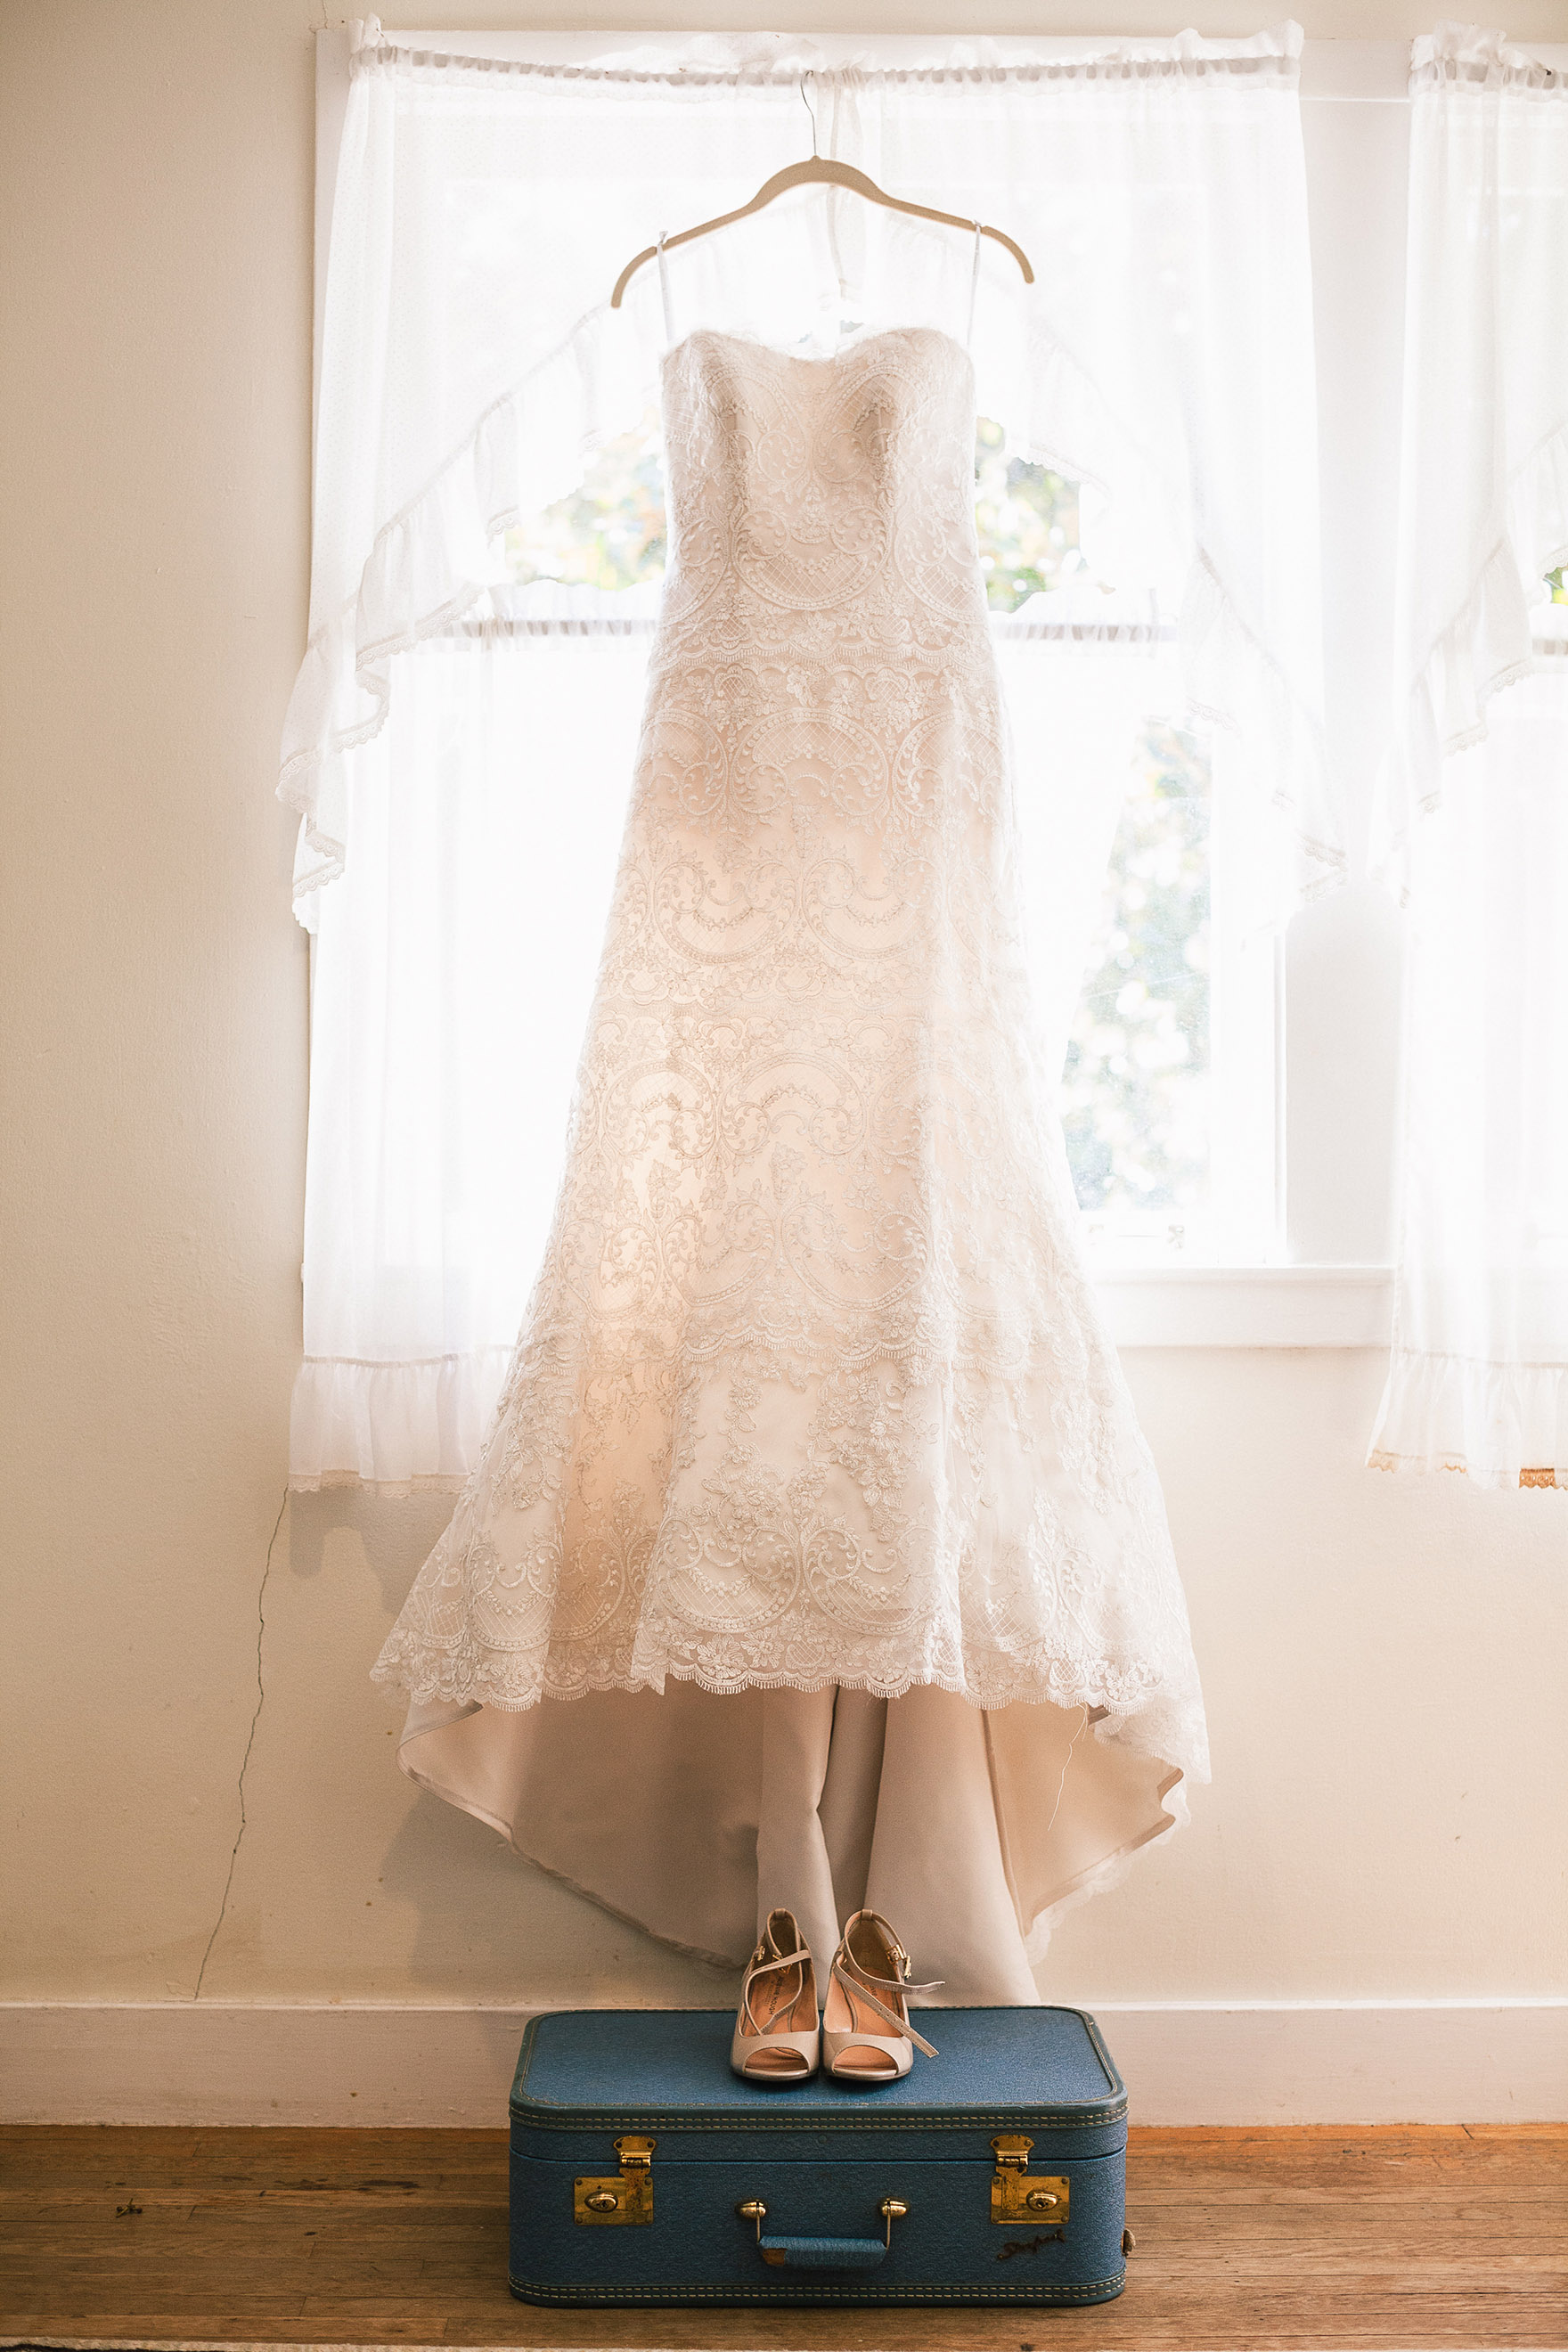 beautiful elegant white wedding dress gown hangs in the window of the cottage inside at a highlands park wedding the perfect felton wedding venue santa cruz wedding venue redwood wedding venue santa cruz wedding photographer